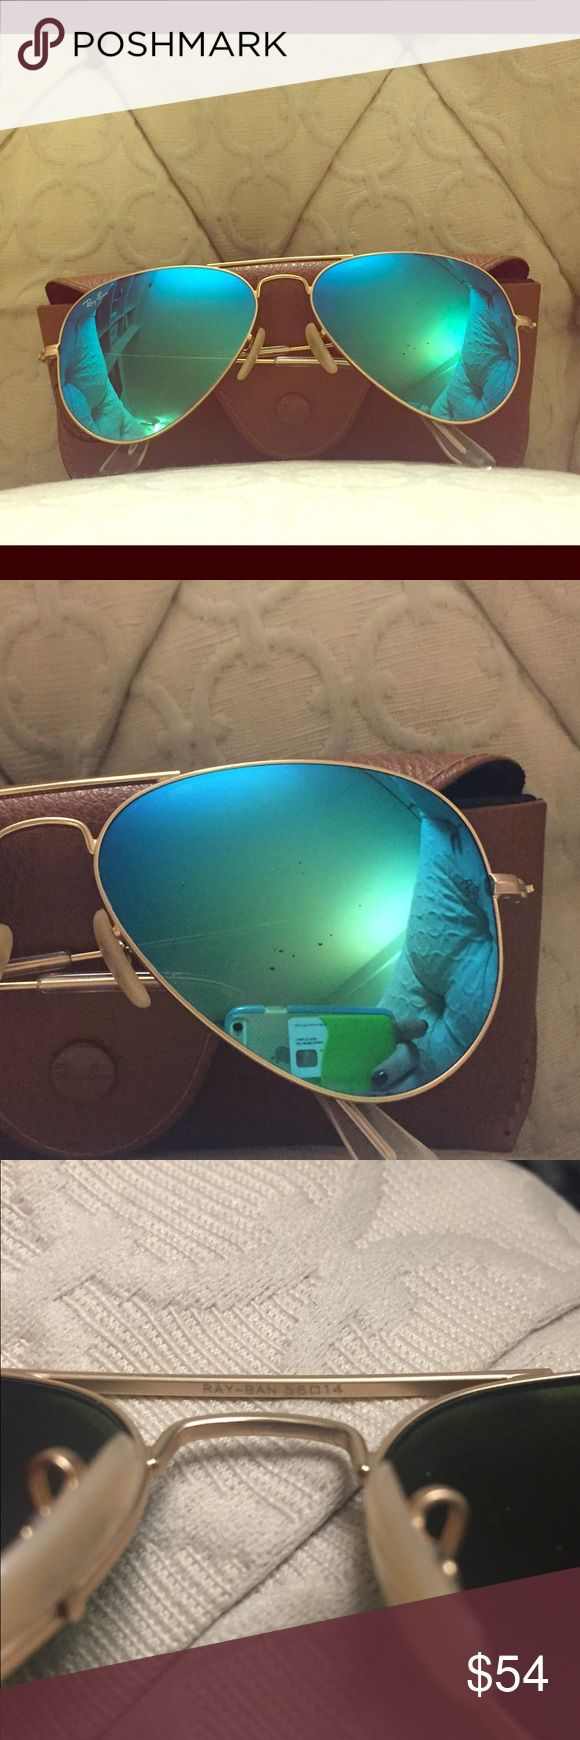 Authentic Ray-Ban Aviator blue flash sunglasses Authentic ray ban aviators in blue flash. Few scratch specks on front lense (pictured). Barely noticeable! Ray-Ban Accessories Sunglasses